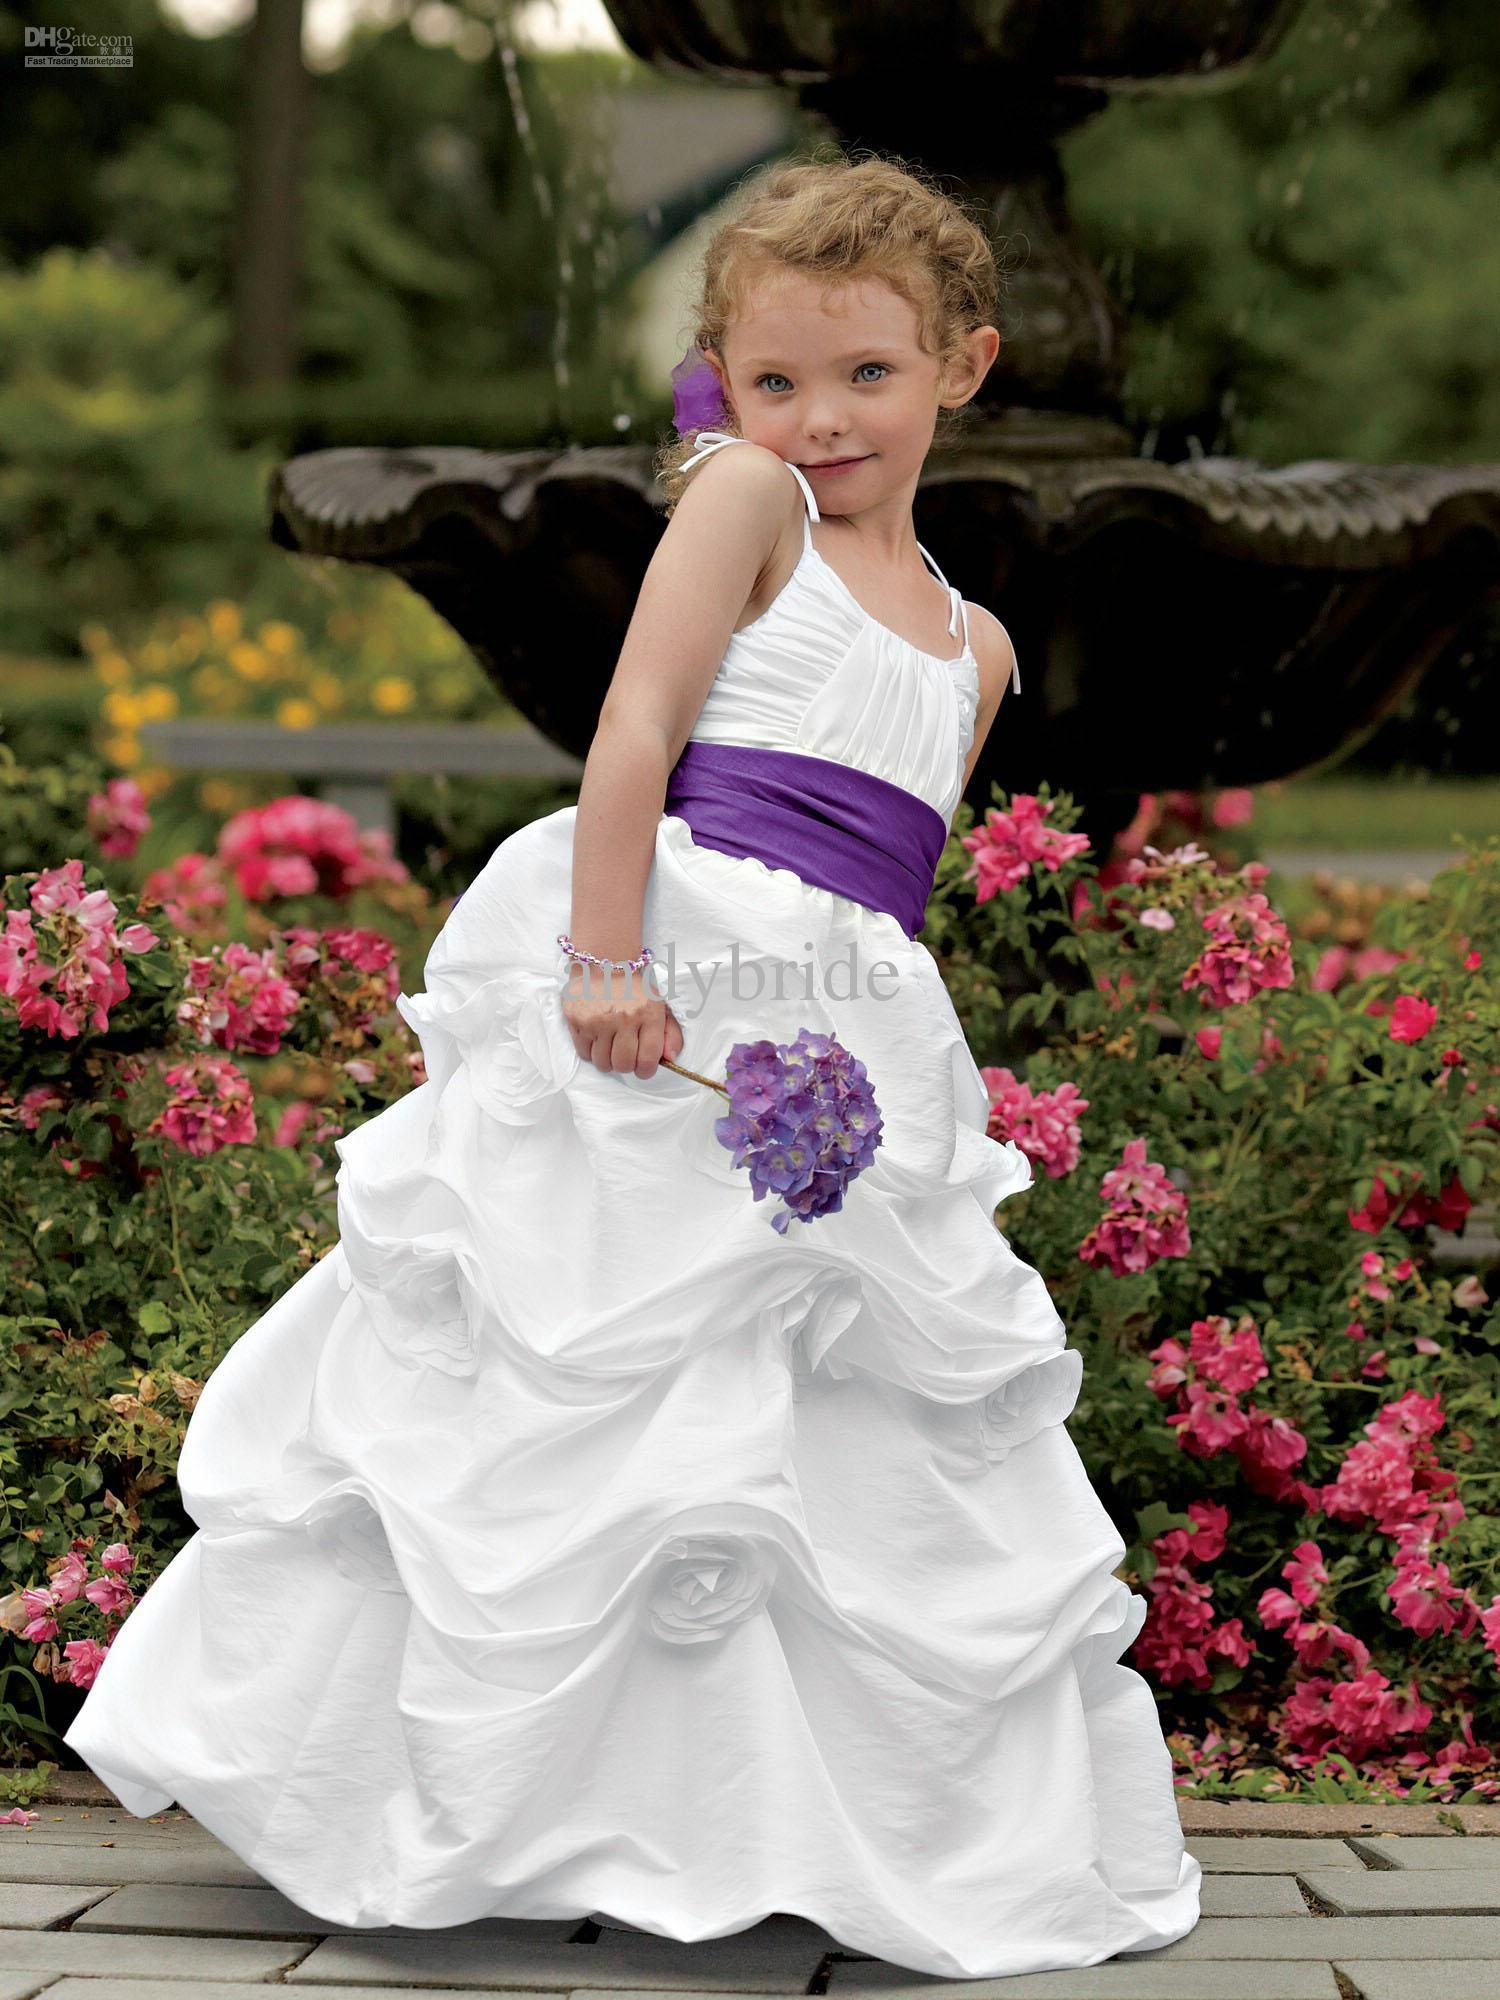 Cheap lovery purple belt bubble unkle length flower girl dresses lovery purple belt bubble unkle length flower girl dresses little girls pageant dresses 2018 from andybride 11492 izmirmasajfo Images